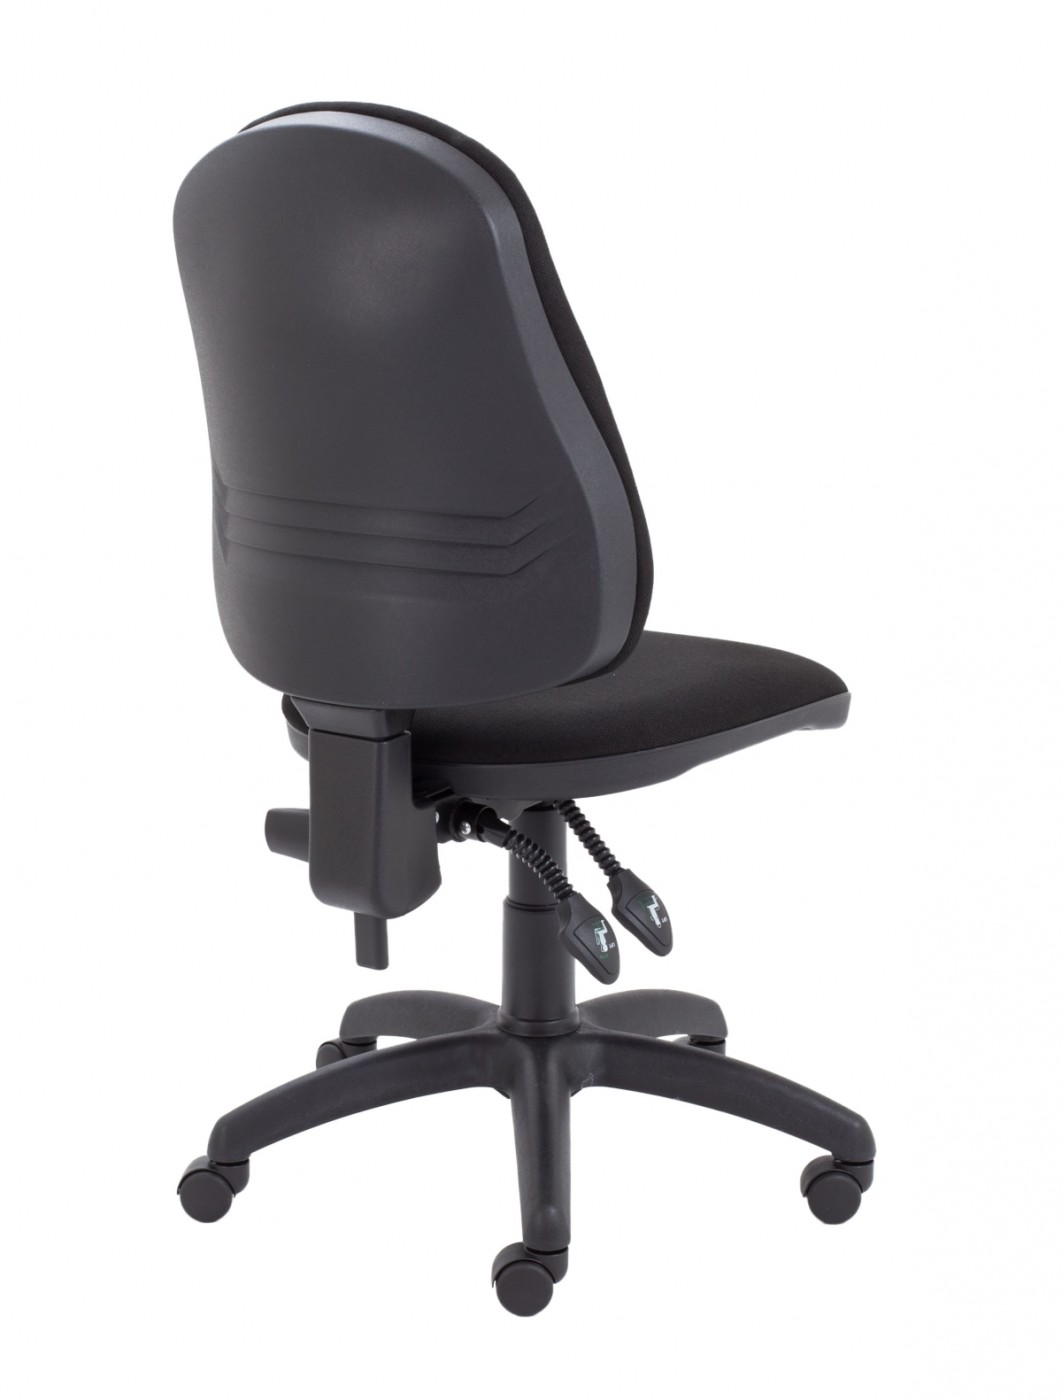 Office Chairs Calypso 2 Operator Chair Ch2800blk Lite018